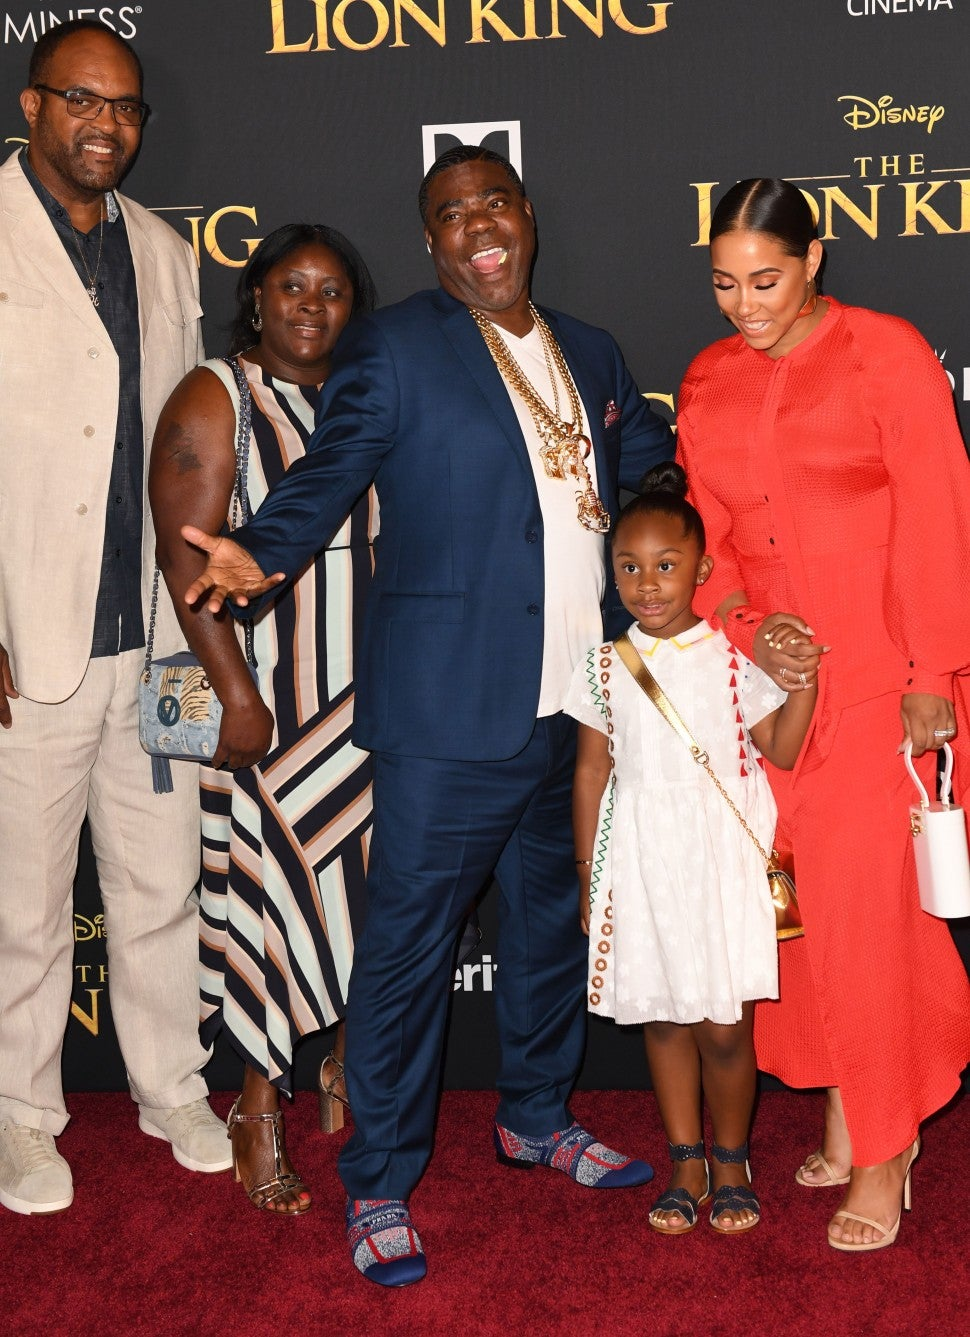 Tracy Morgan and Family Lion King Premiere